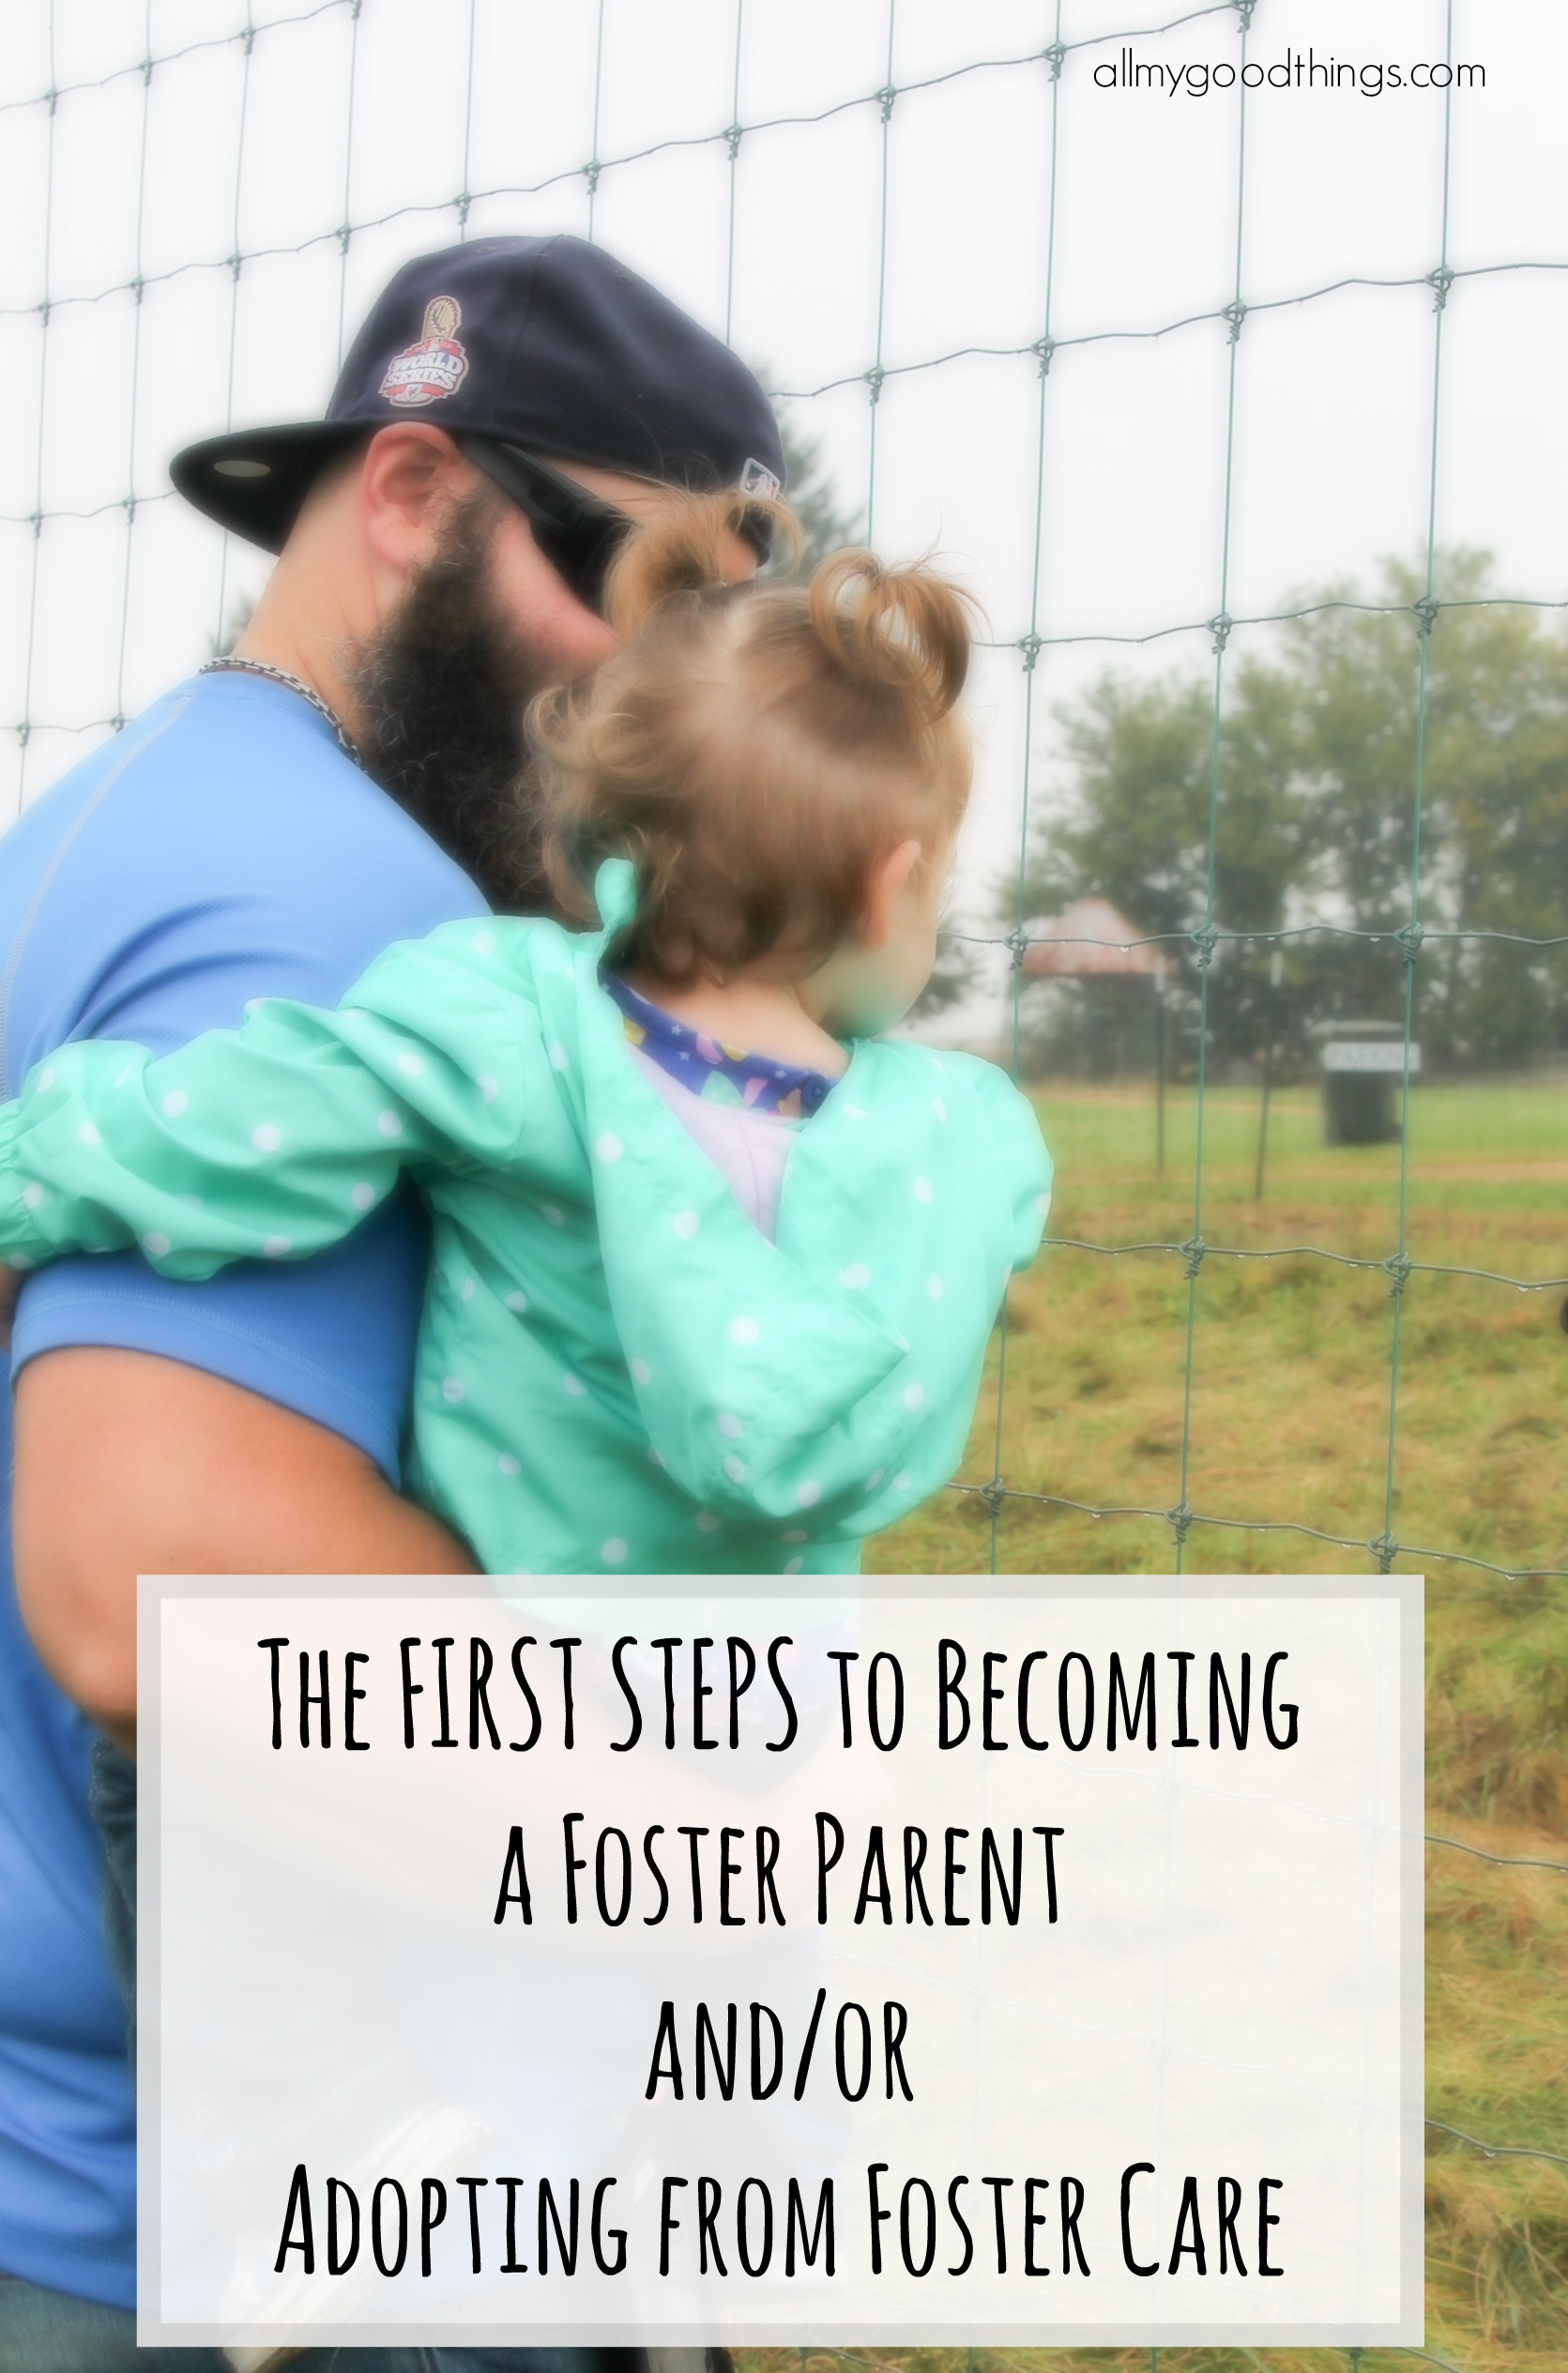 The First Steps To Becoming A Foster Parent and Adopting from Foster Care